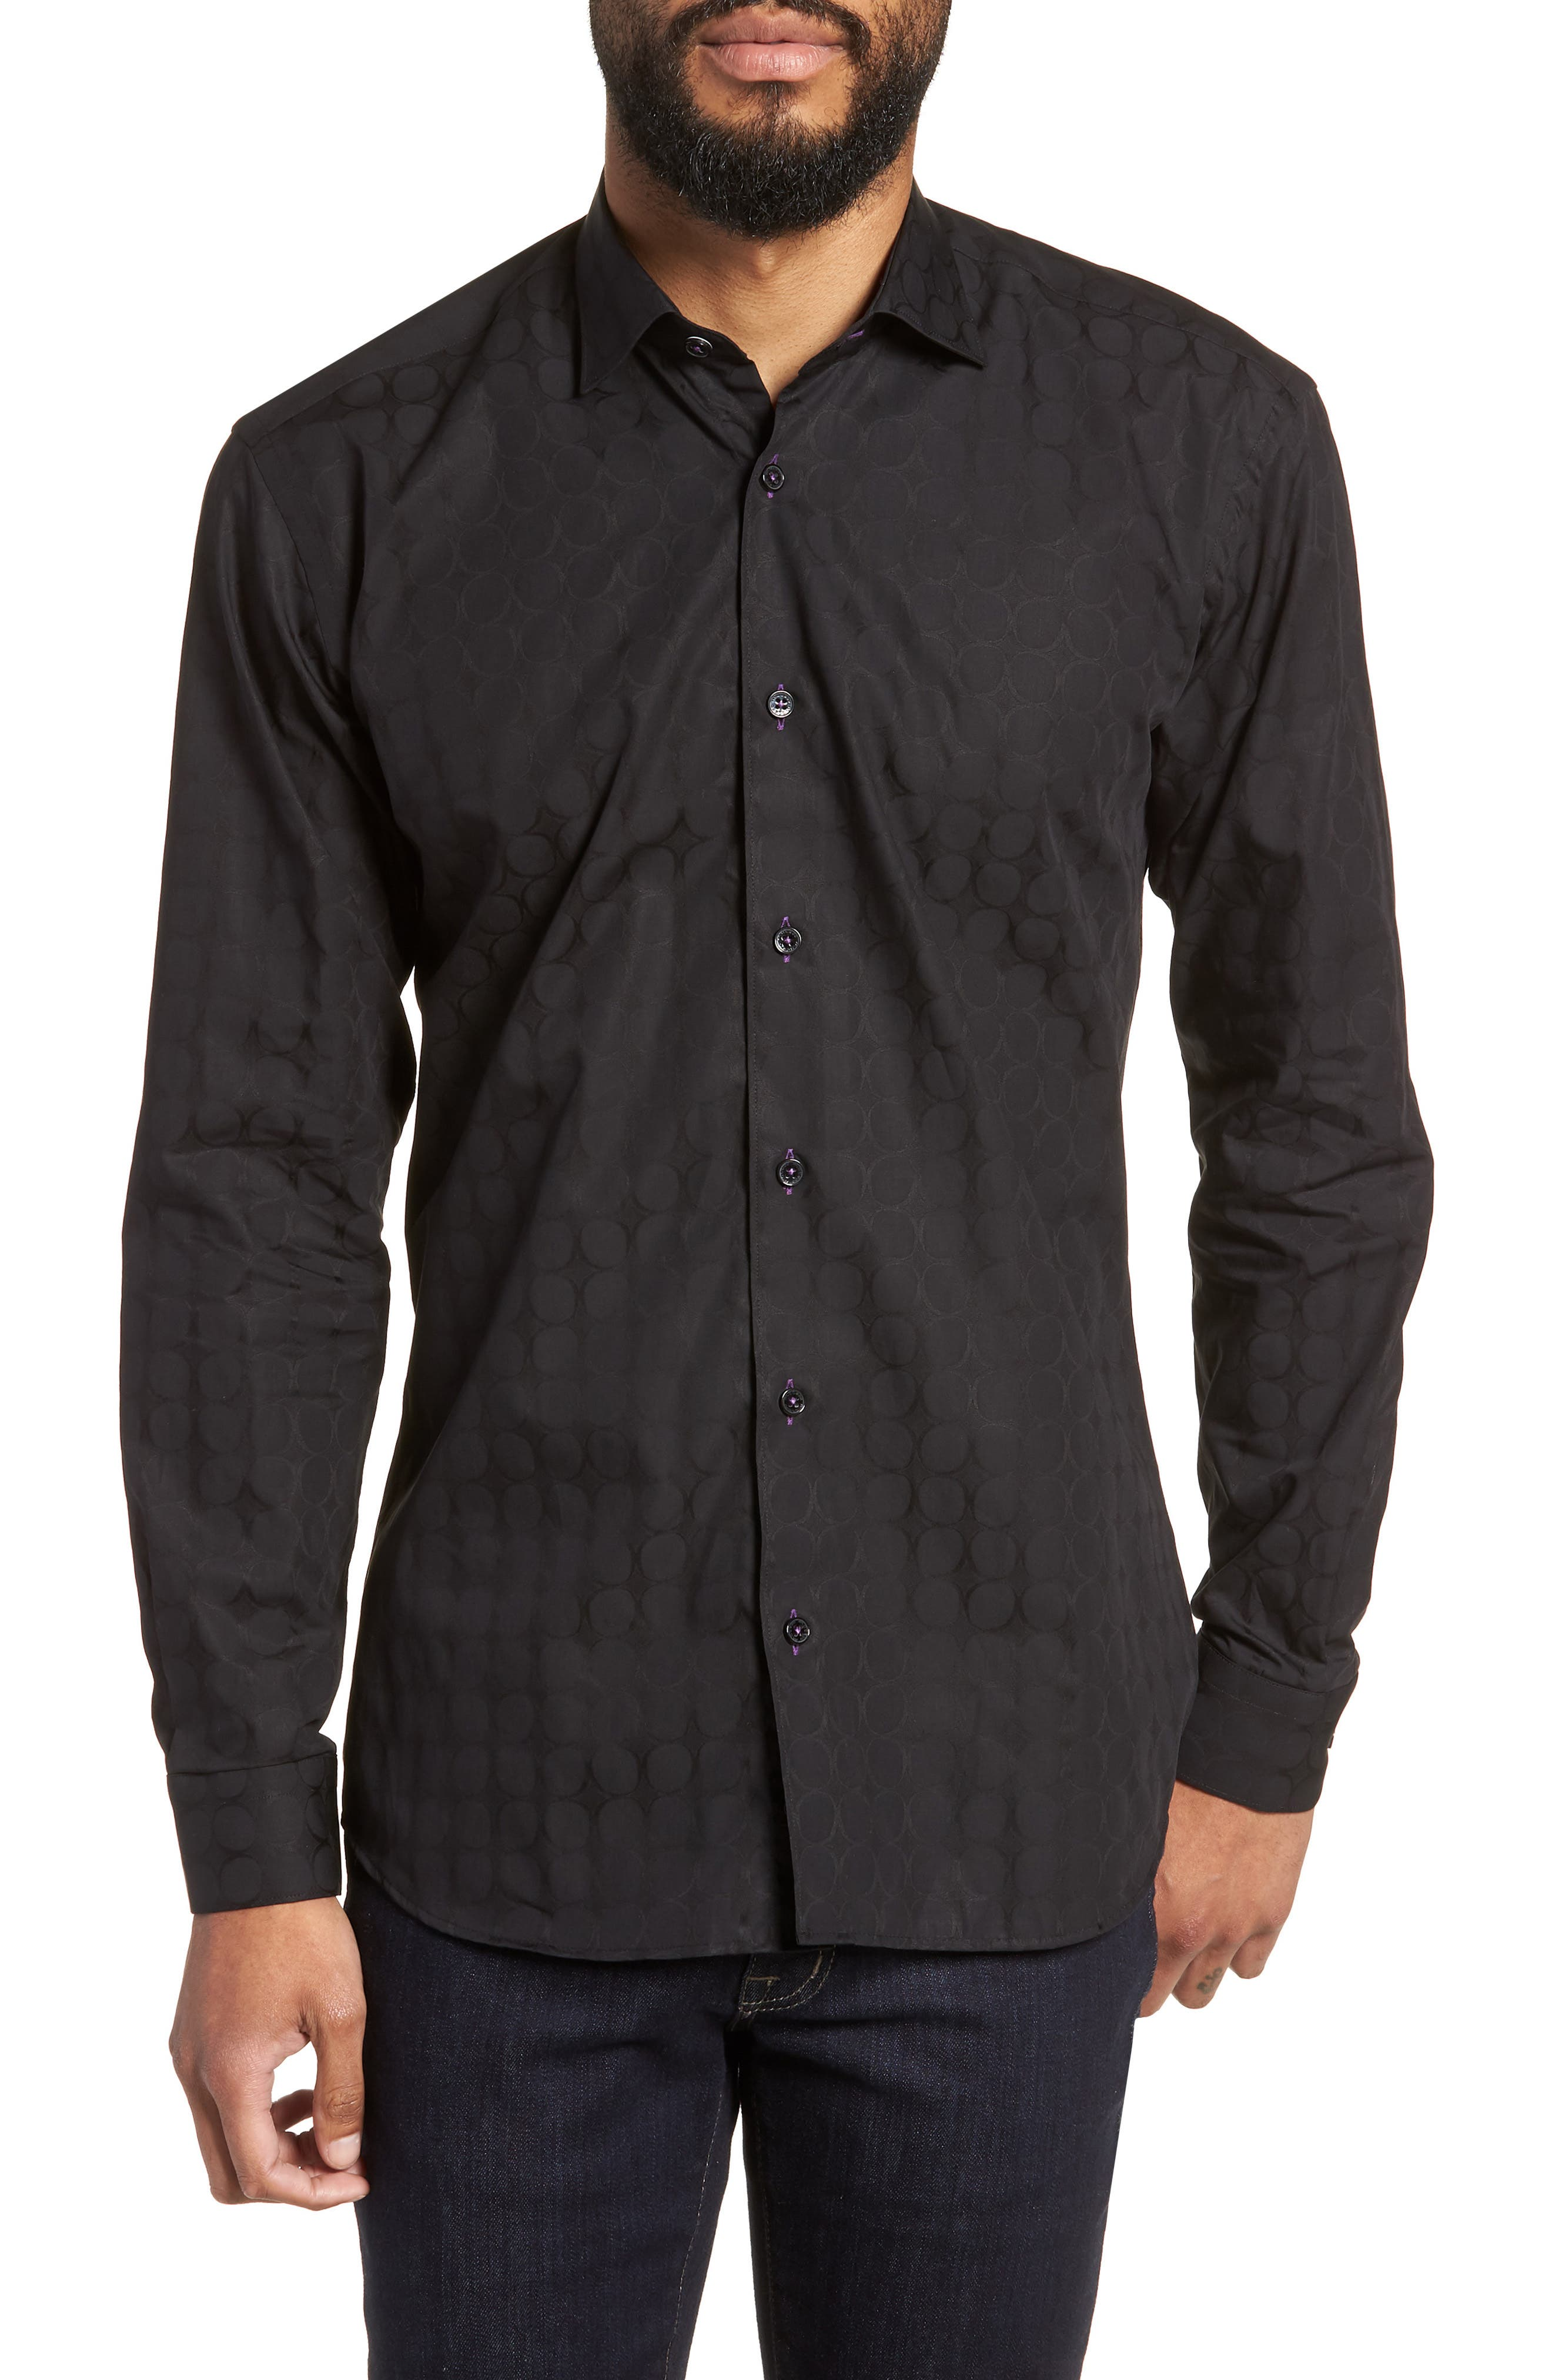 Luxor Bond Sport Shirt,                             Main thumbnail 1, color,                             Black